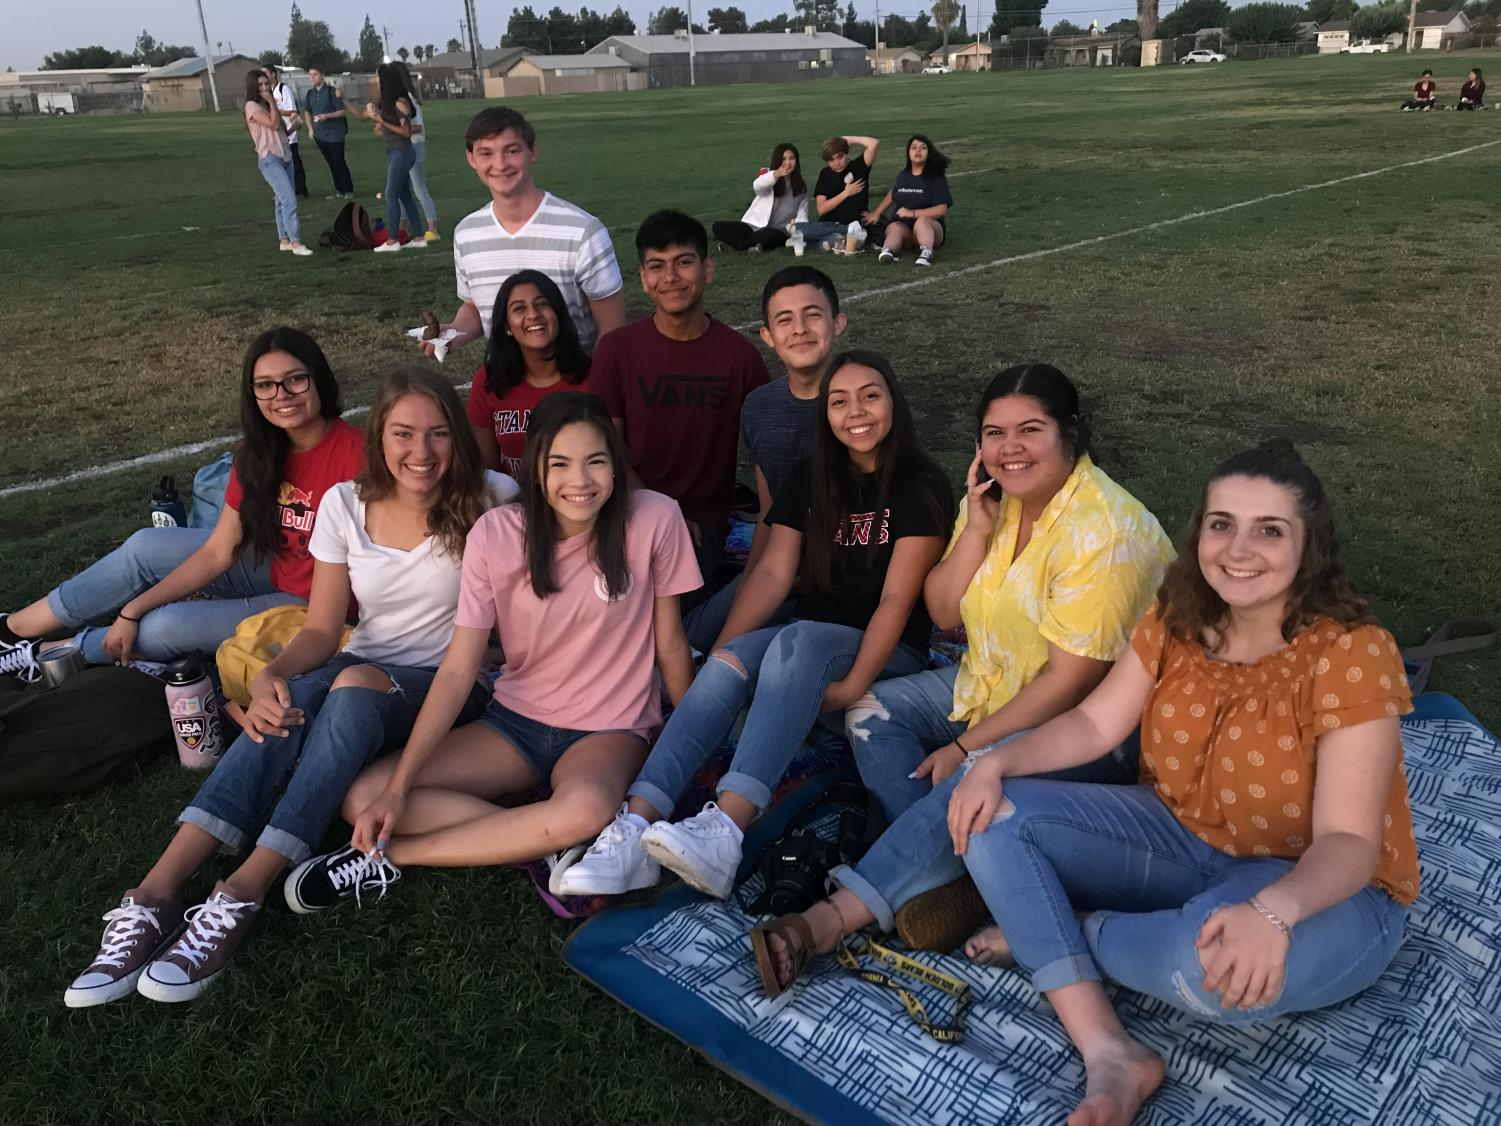 Seniors gather together for Senior Sunrise on the softball practice field. Photo contributed by Noelle Marroquin